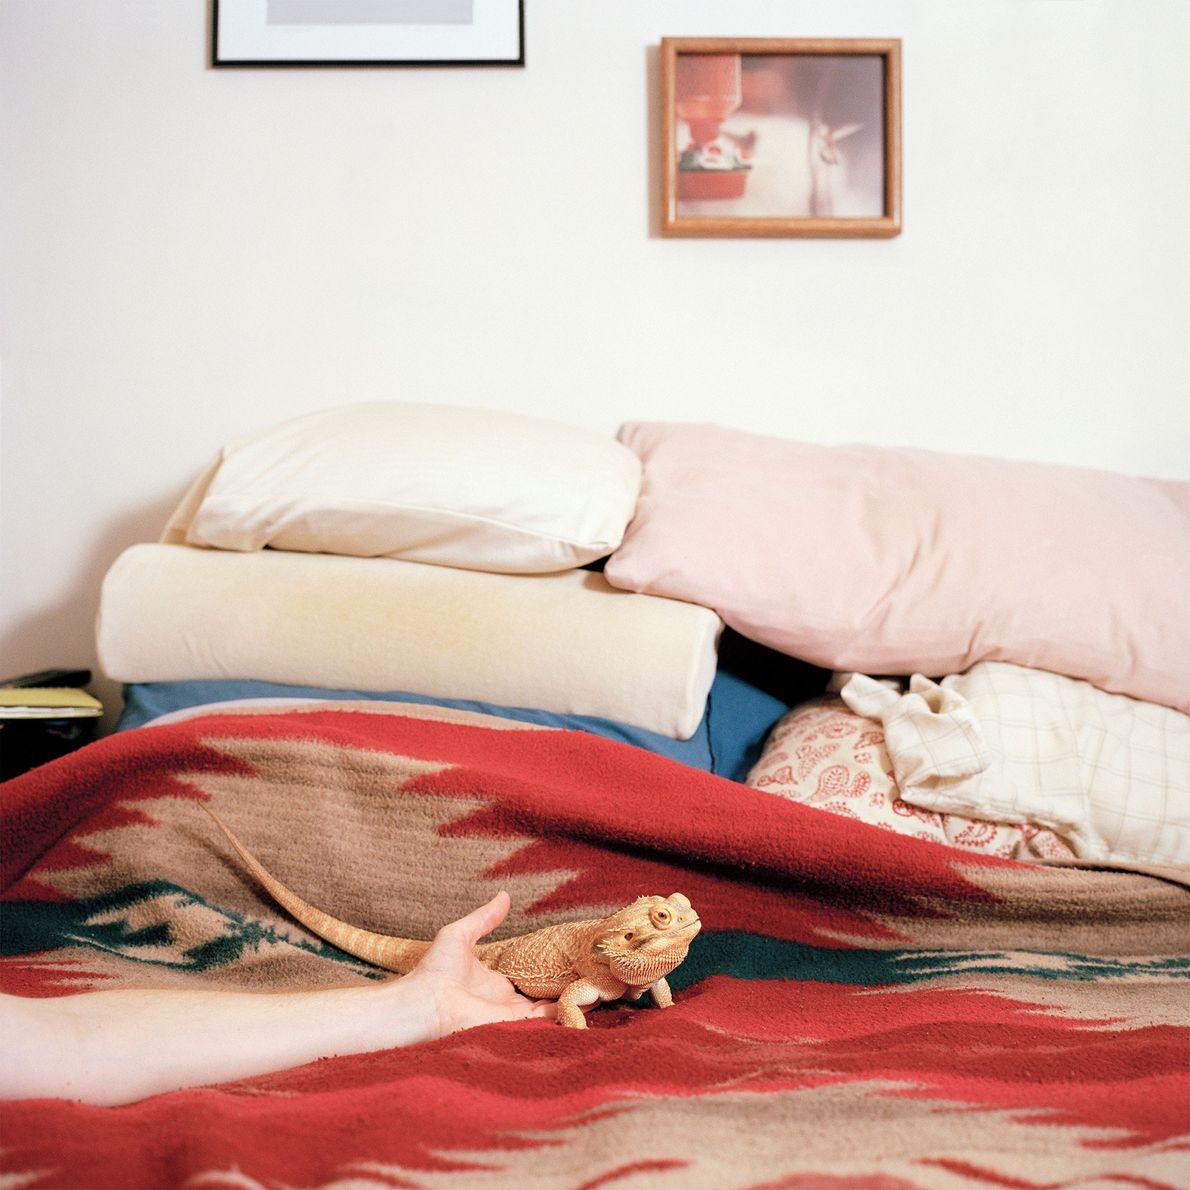 A bearded dragon named Tumnus—named after a character in the Chronicles of Narnia—rests on a bed. ...